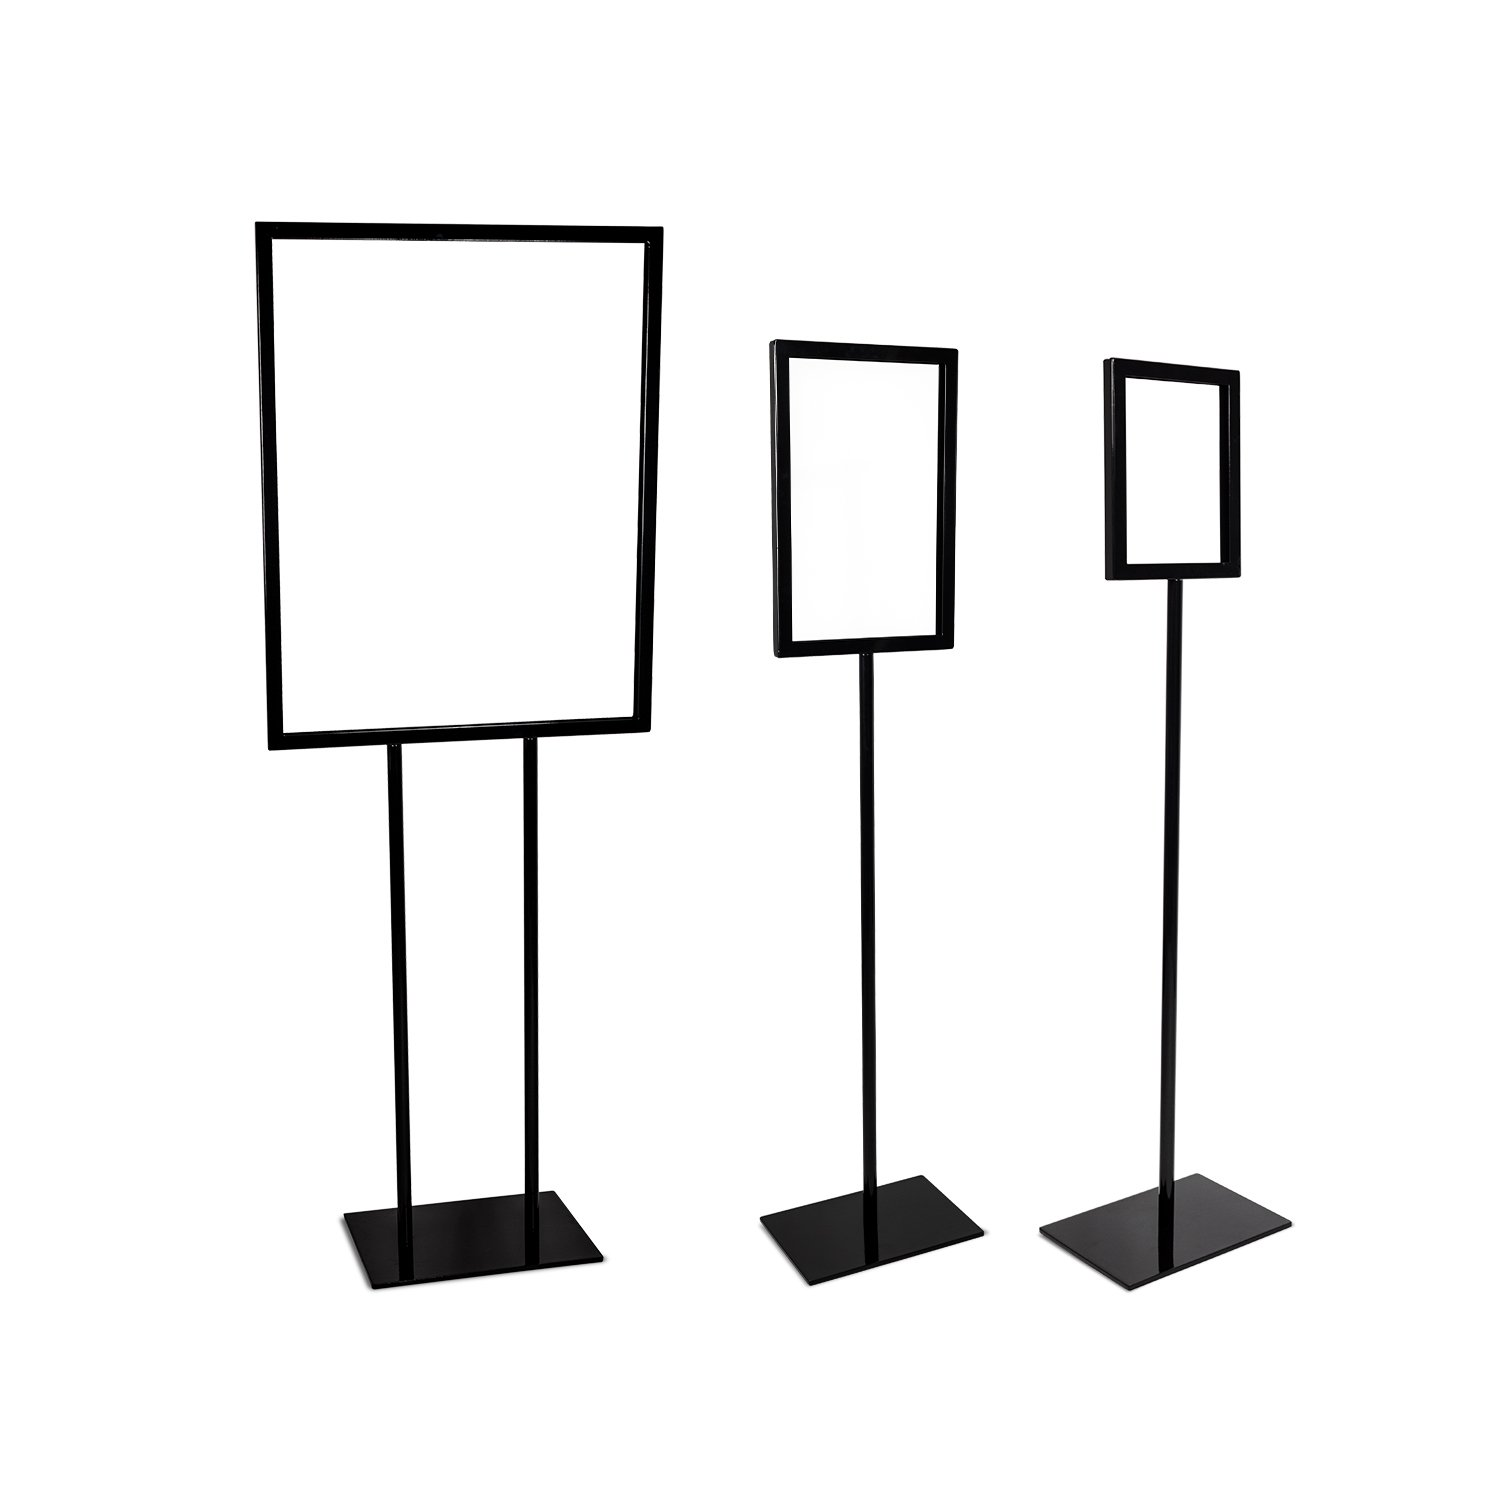 Source One Deluxe 22 x 28, 11 x 17, 8 1/2 x 11 Inch Floor Standing Sign Holders Multiple Colors Black, White & Gray Heavy Duty Weighted Metal (22 x 28 Inch, Black) by SOURCEONE.ORG (Image #4)